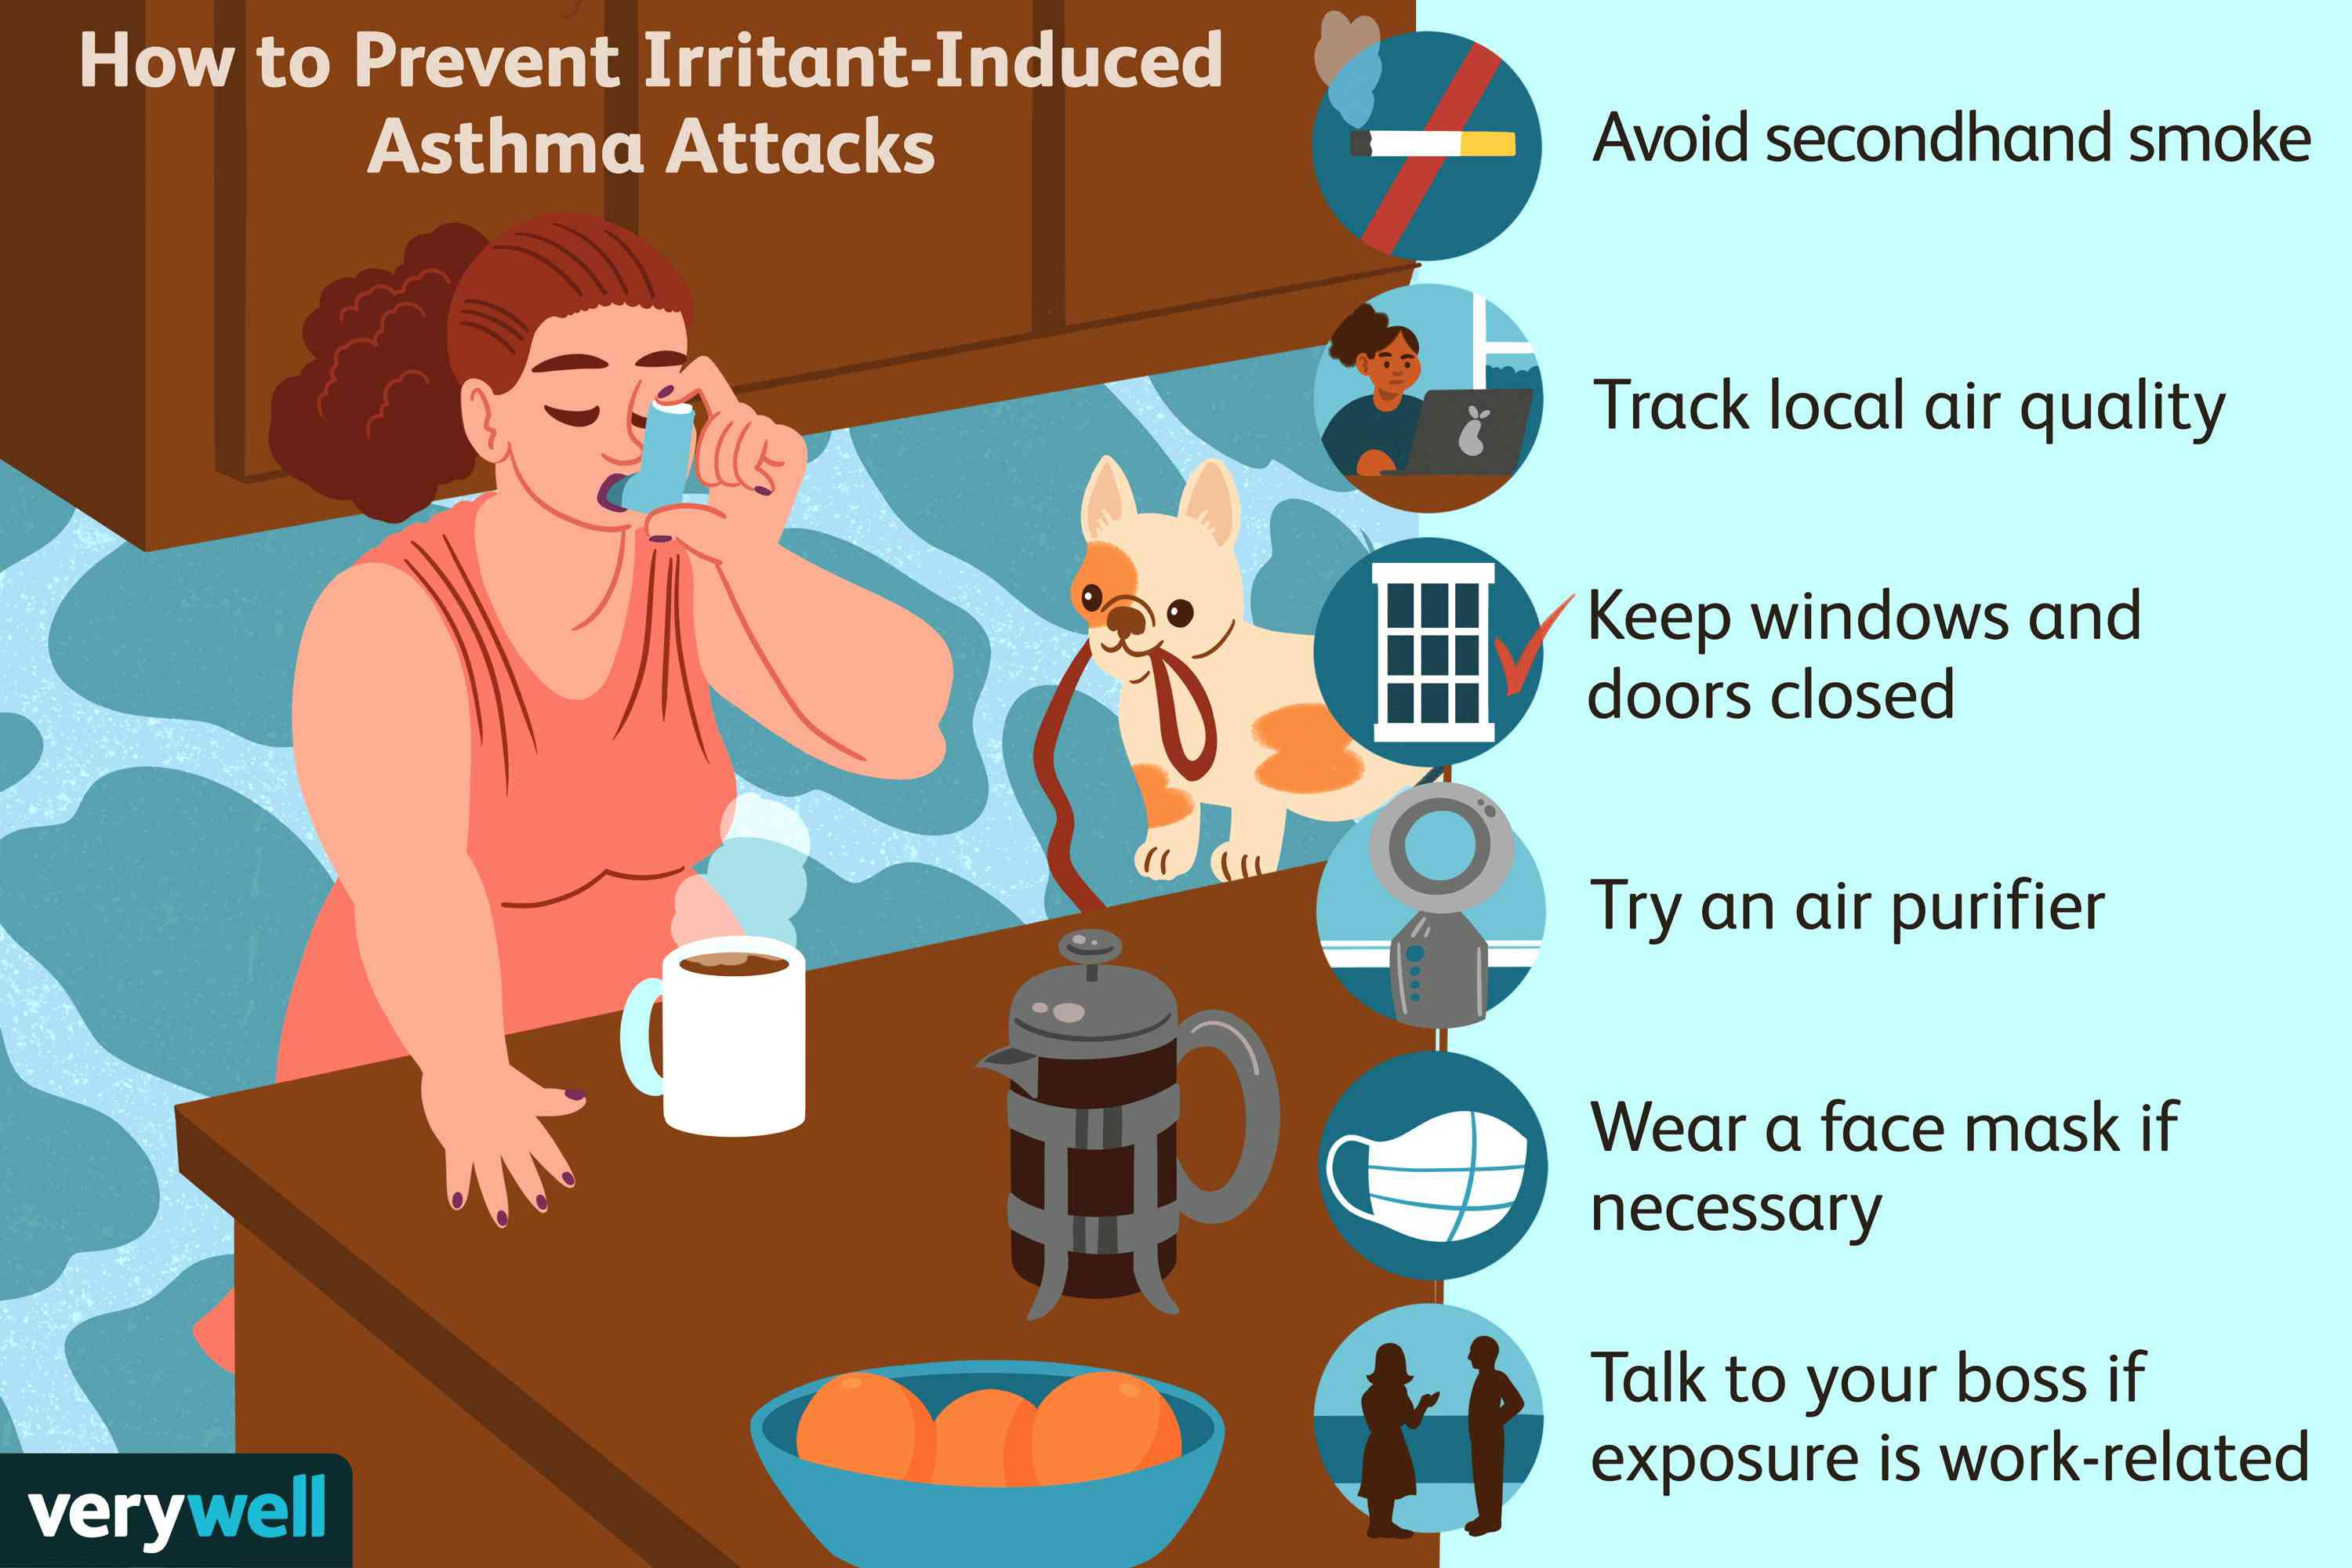 How to Prevent Irritant-Induced Asthma Attacks